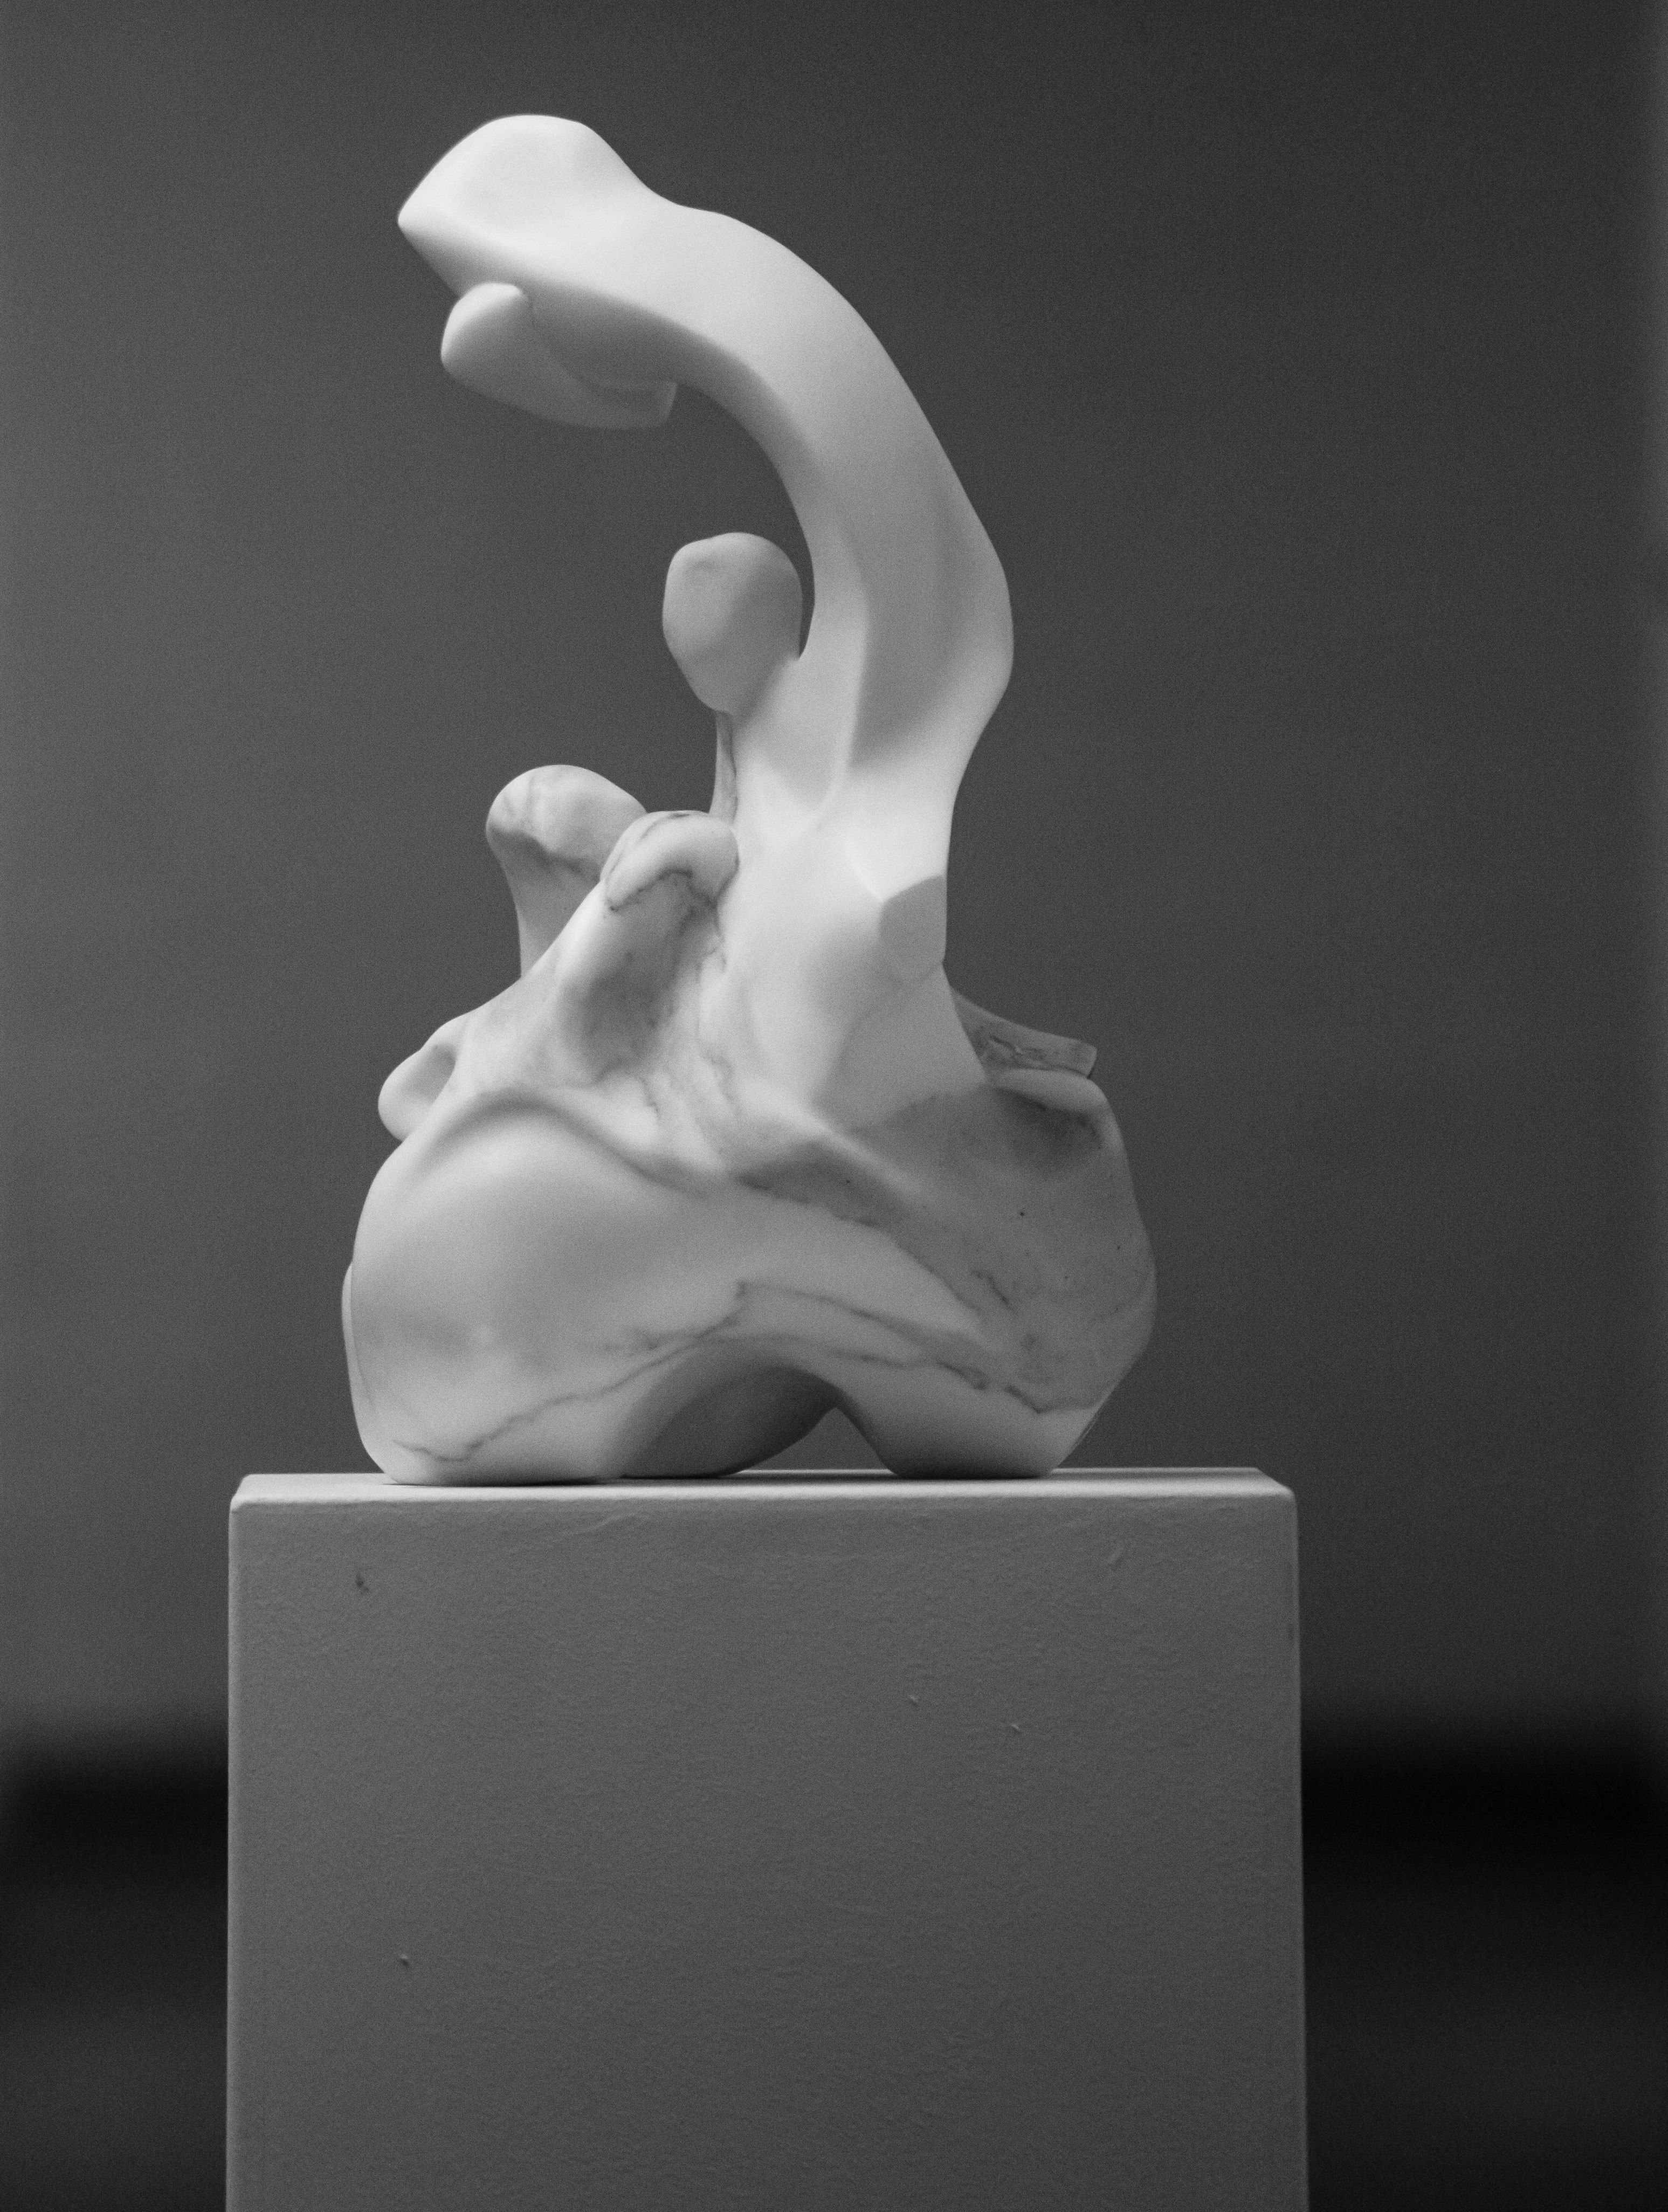 Marble sculpture of Hanna Gigling 07